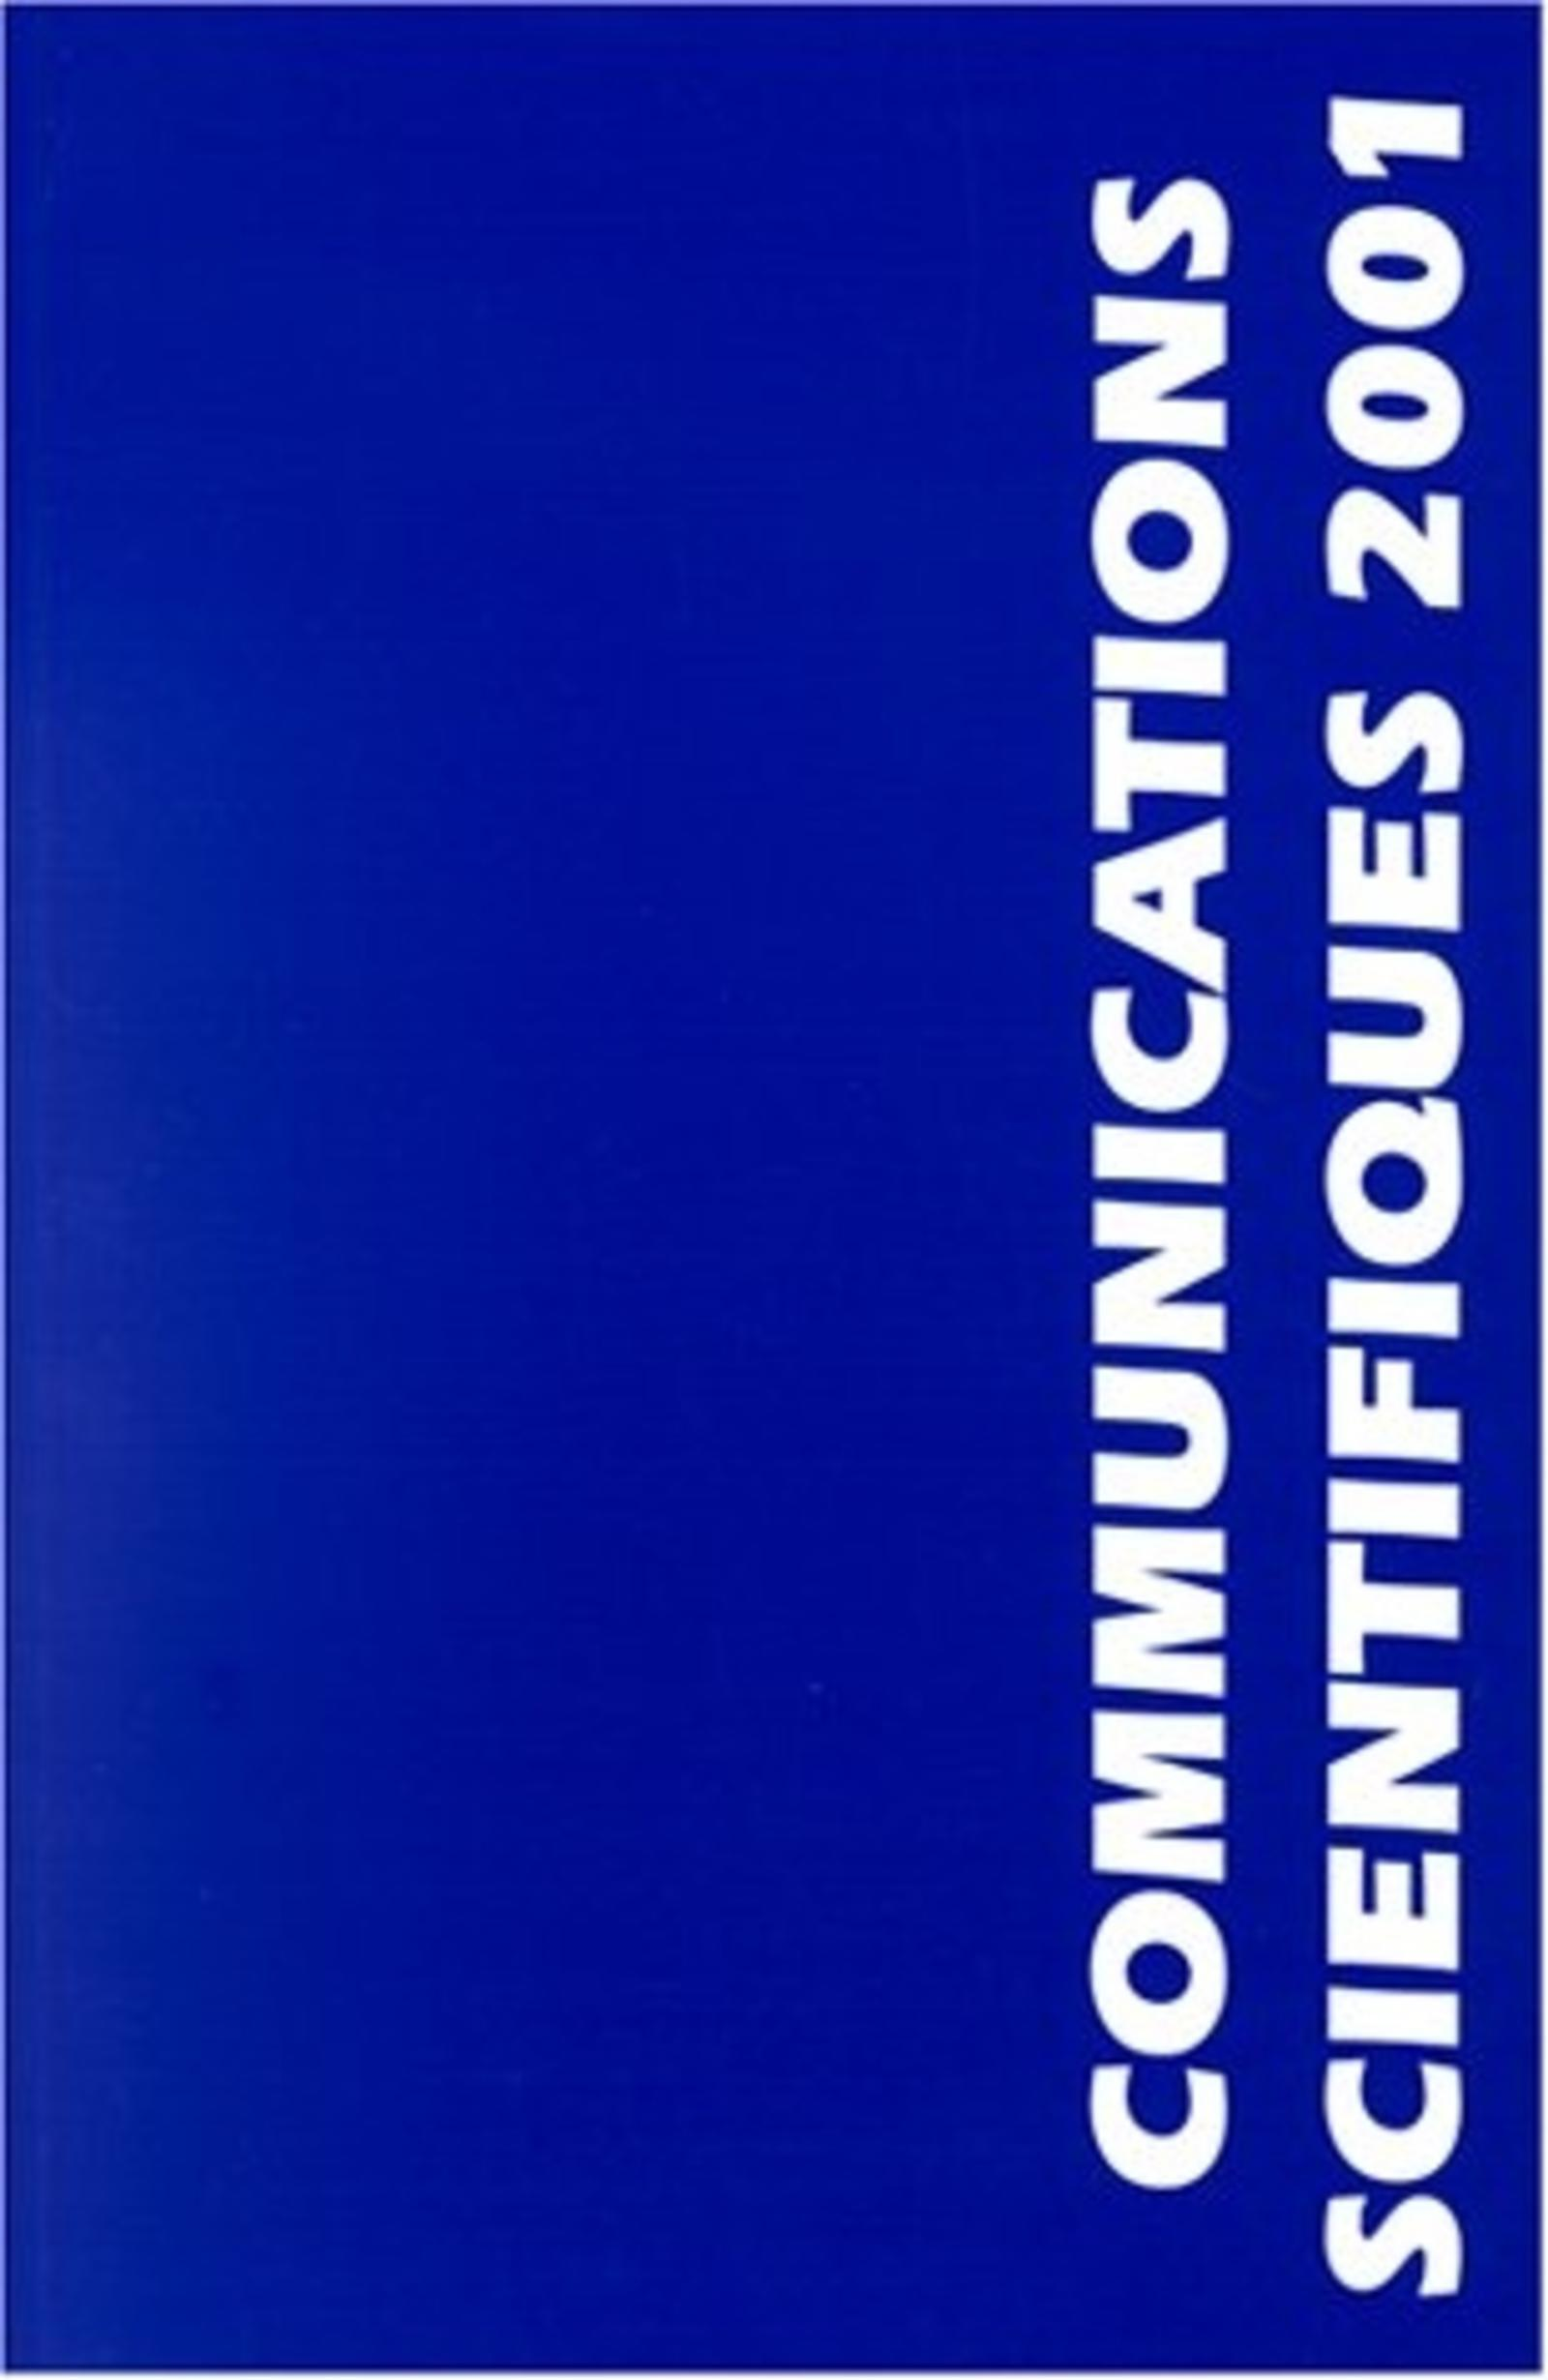 COMMUNICATIONS SCIENTIFIQUES MAPAR 2001